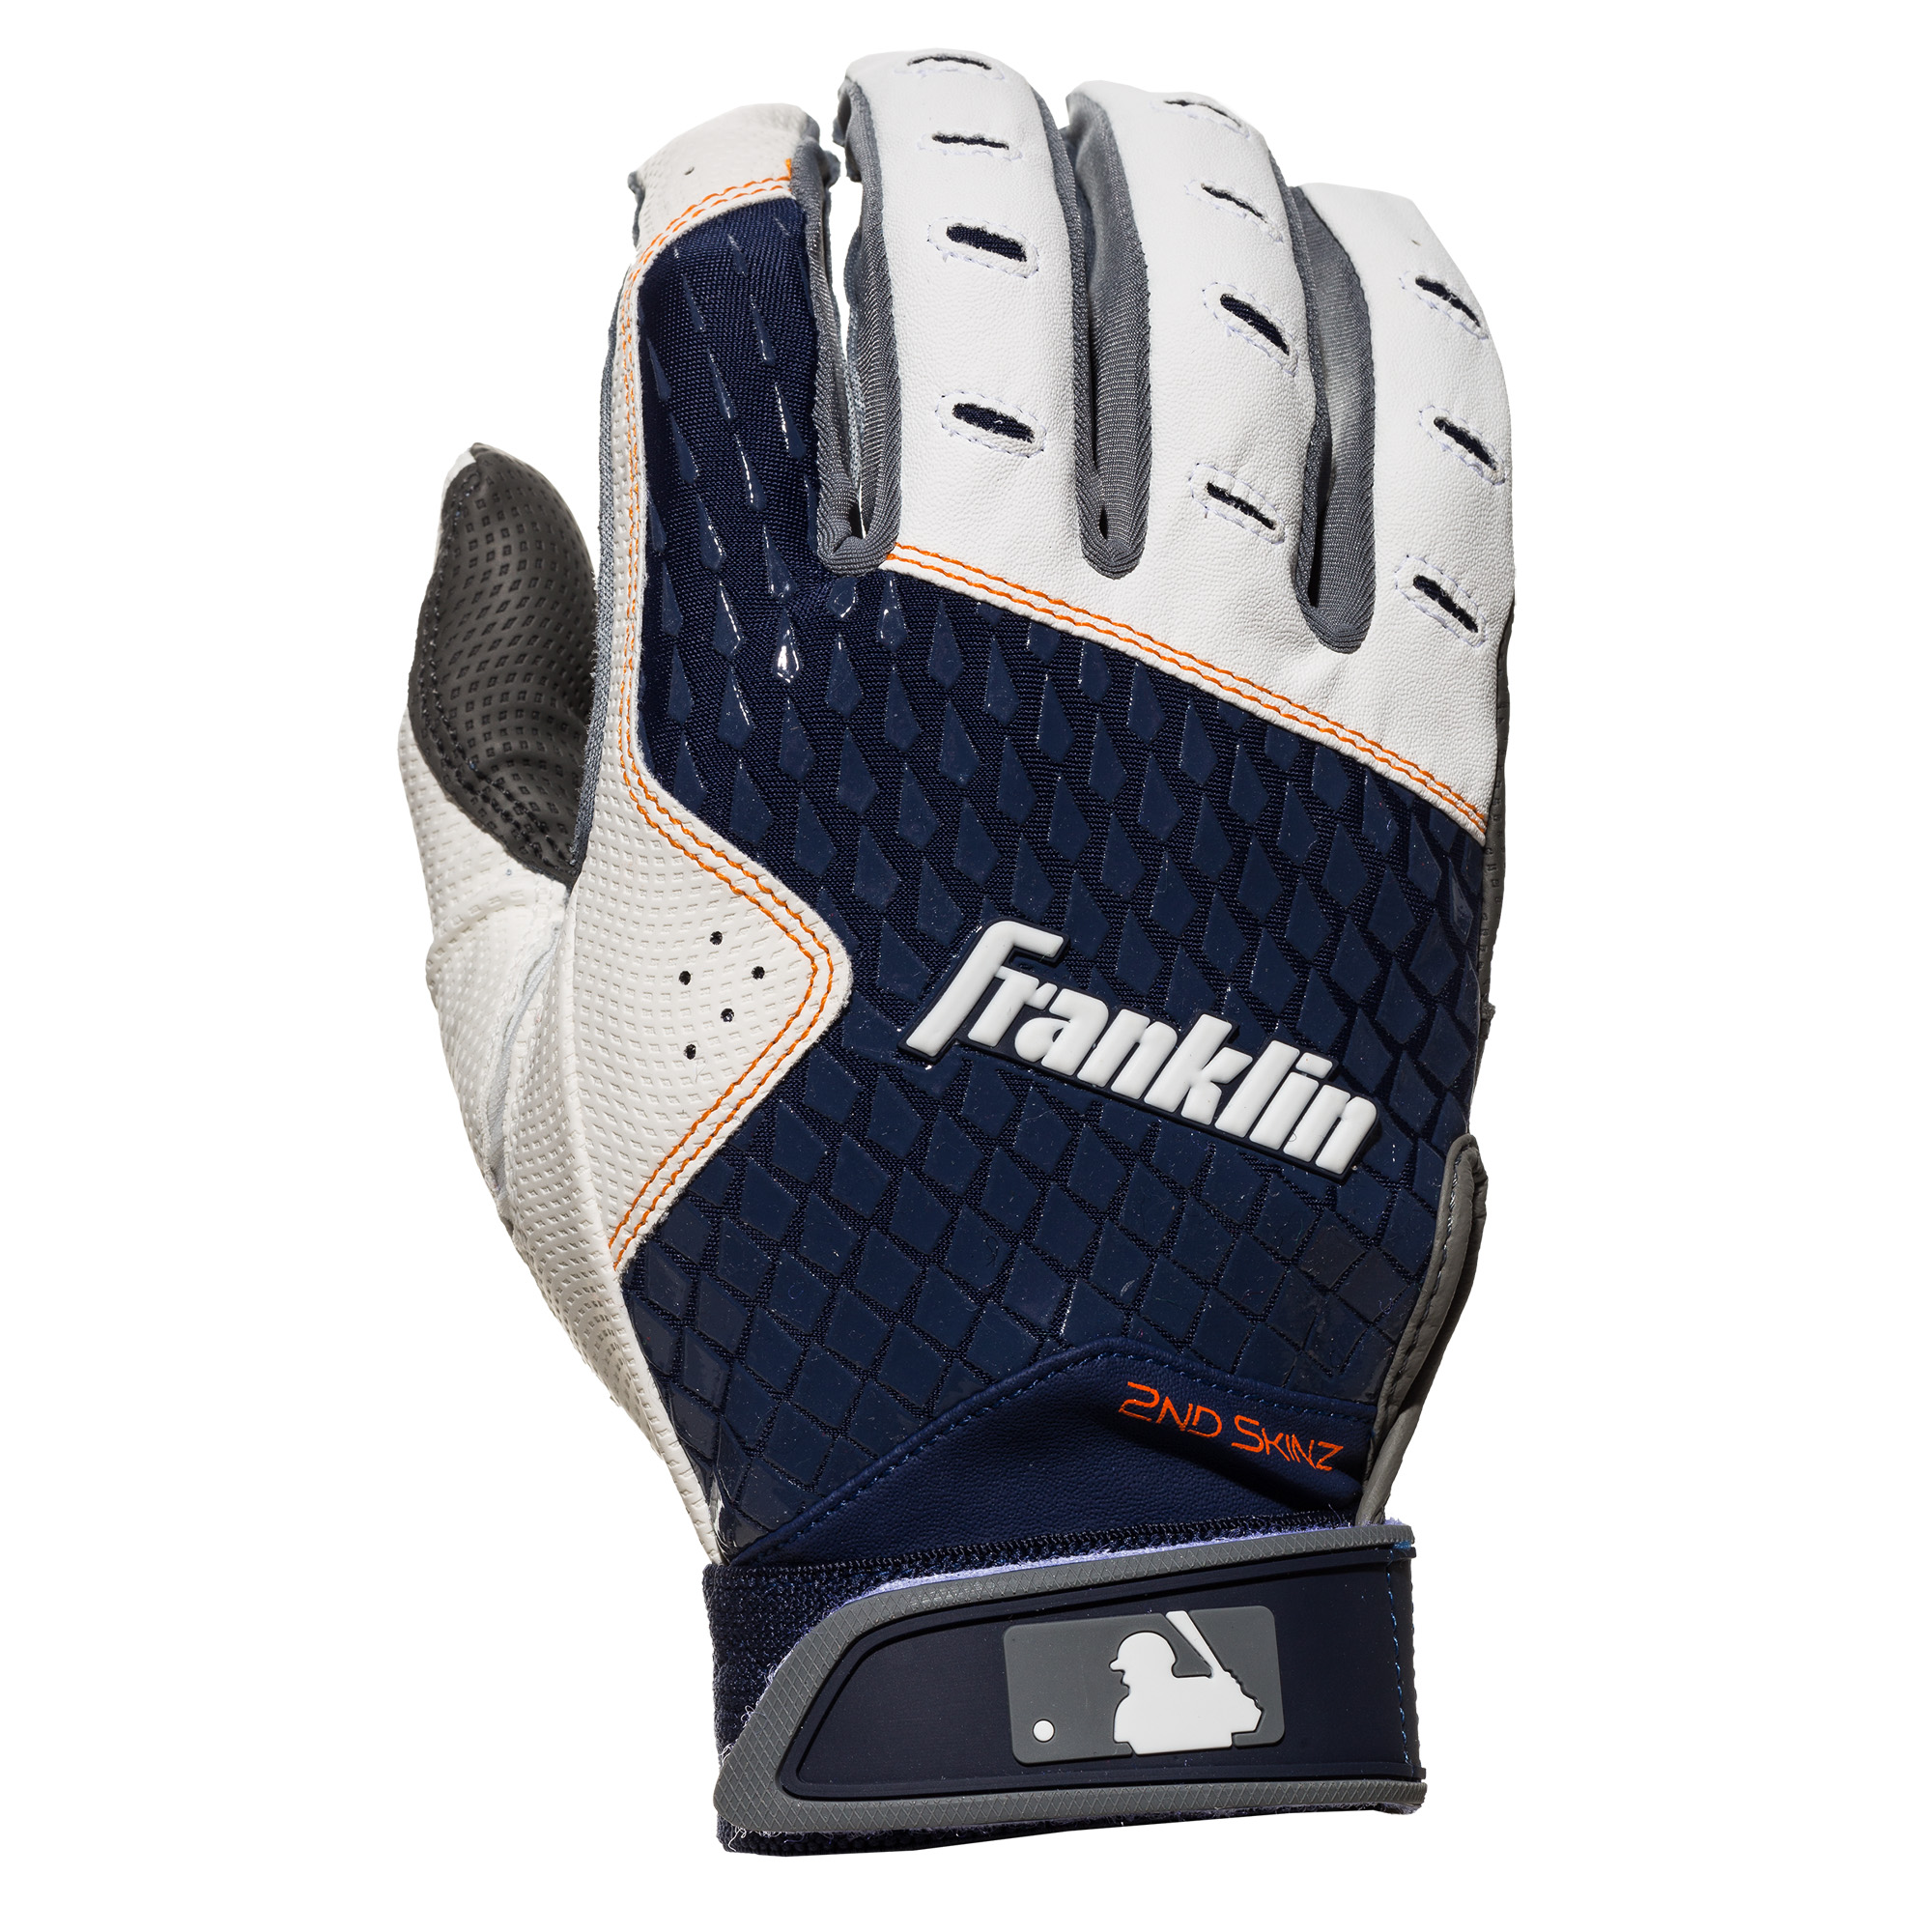 Franklin Sports Adult 2nd-Skinz Batting Gloves, Assorted